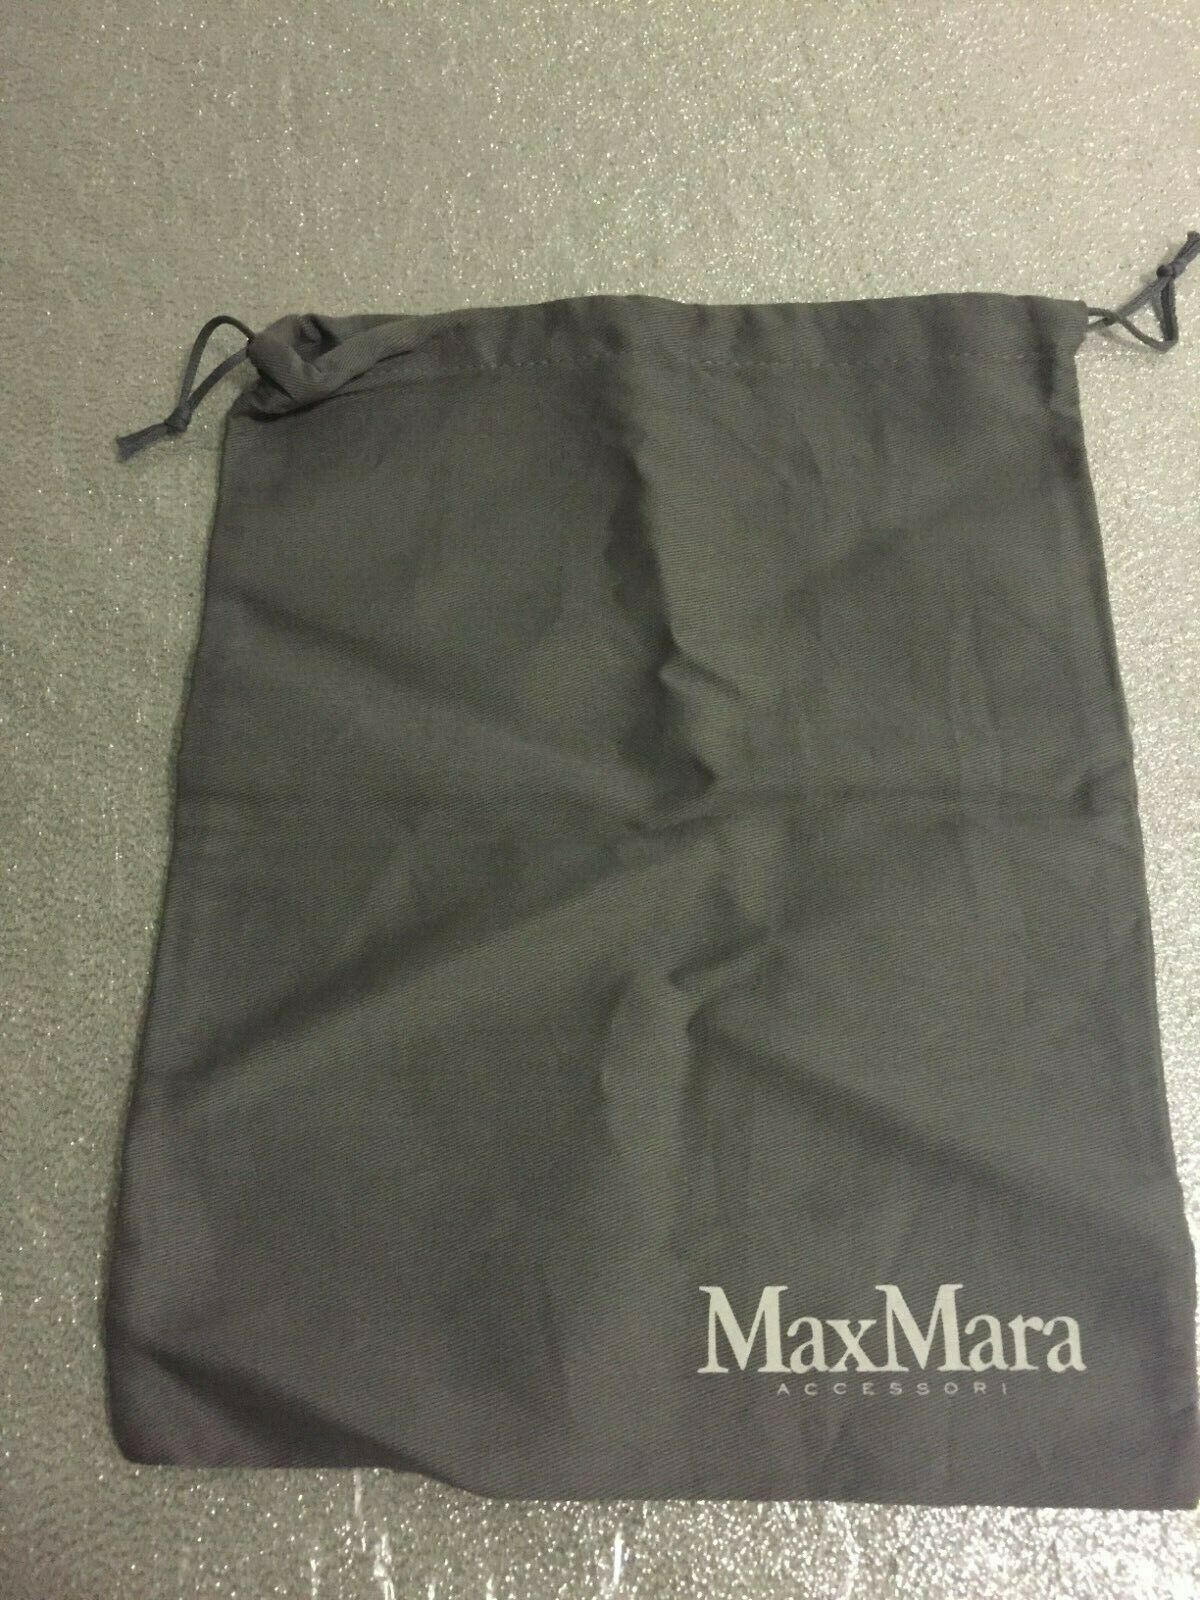 New 100% Authentic Max Mara Accessori Dust Shoes Bag Never Used